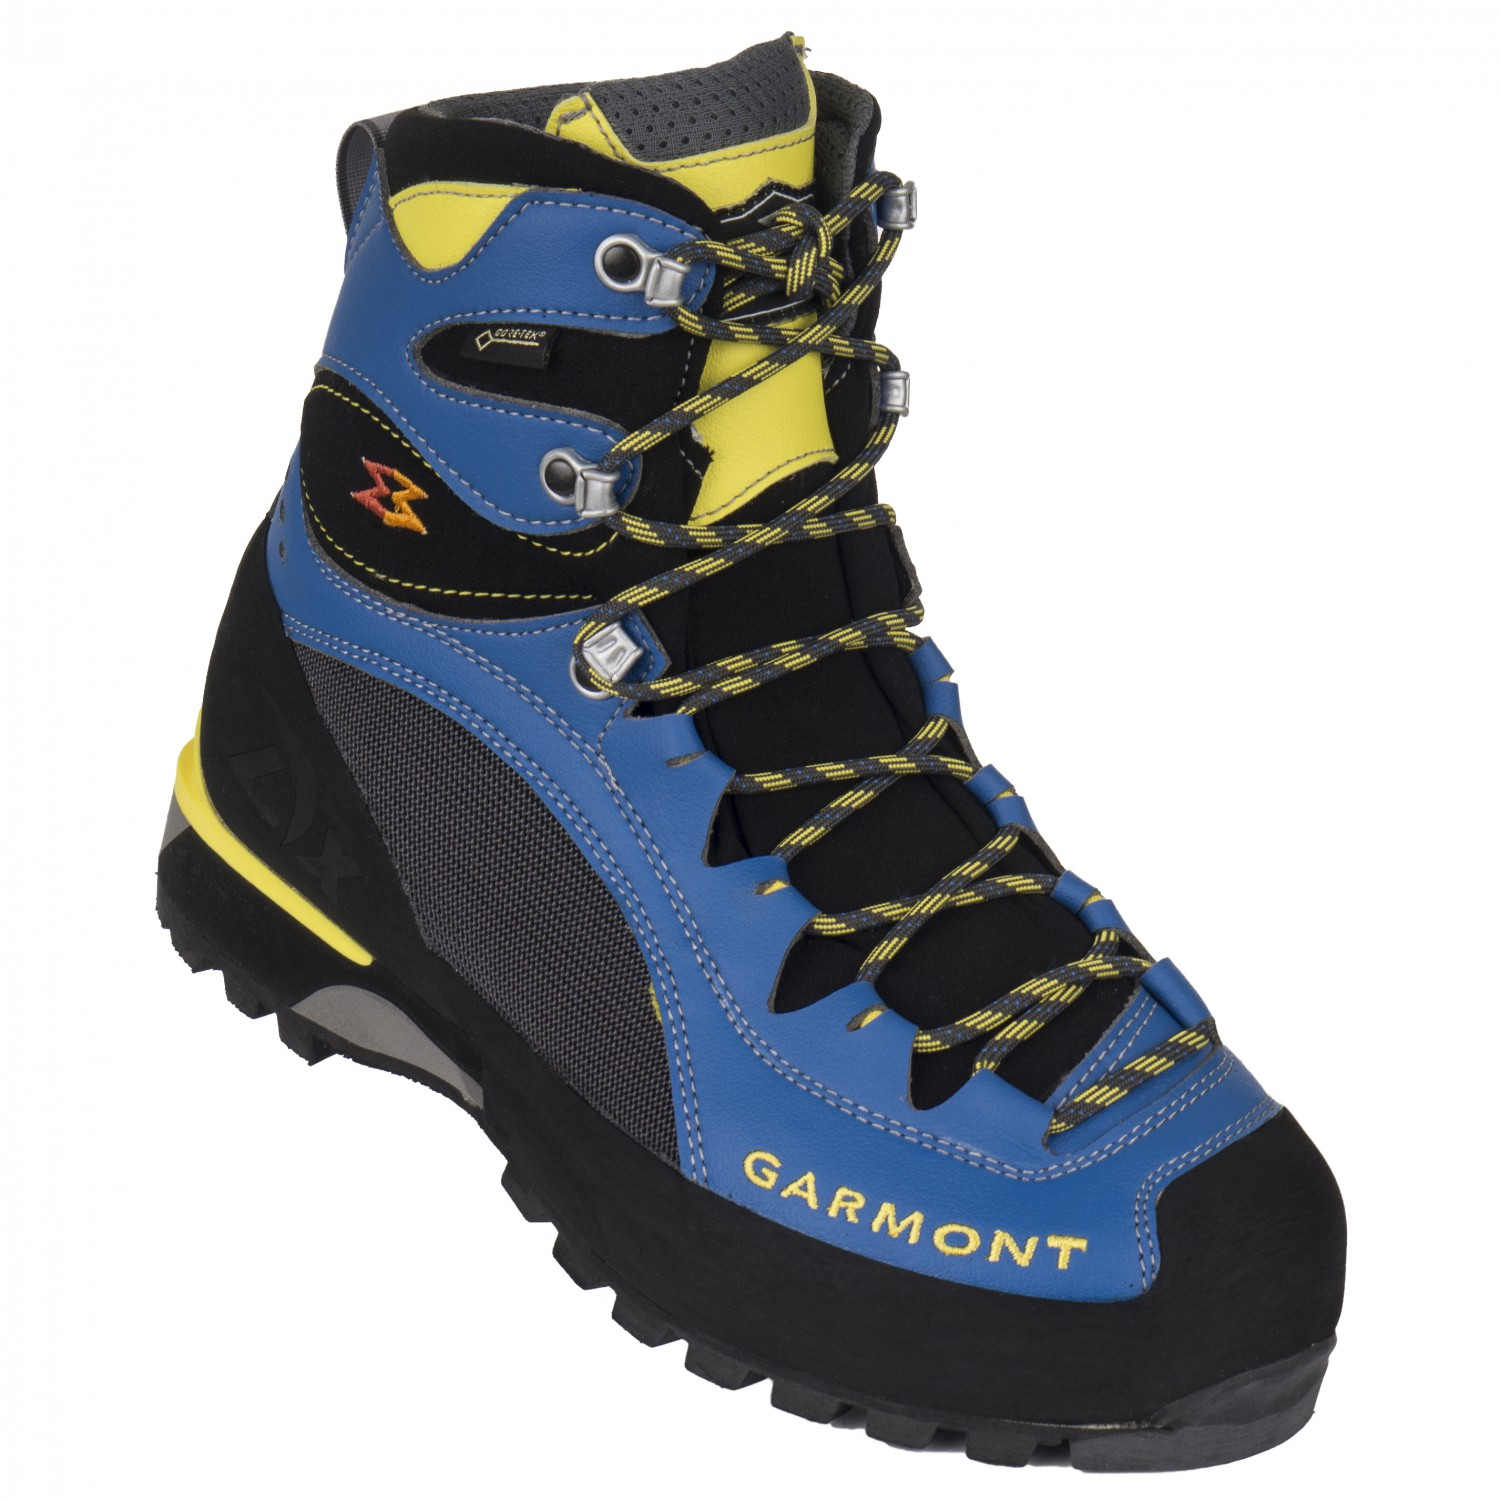 Garmont Tower Lx Gtx Mountaineering Boots Men S Free